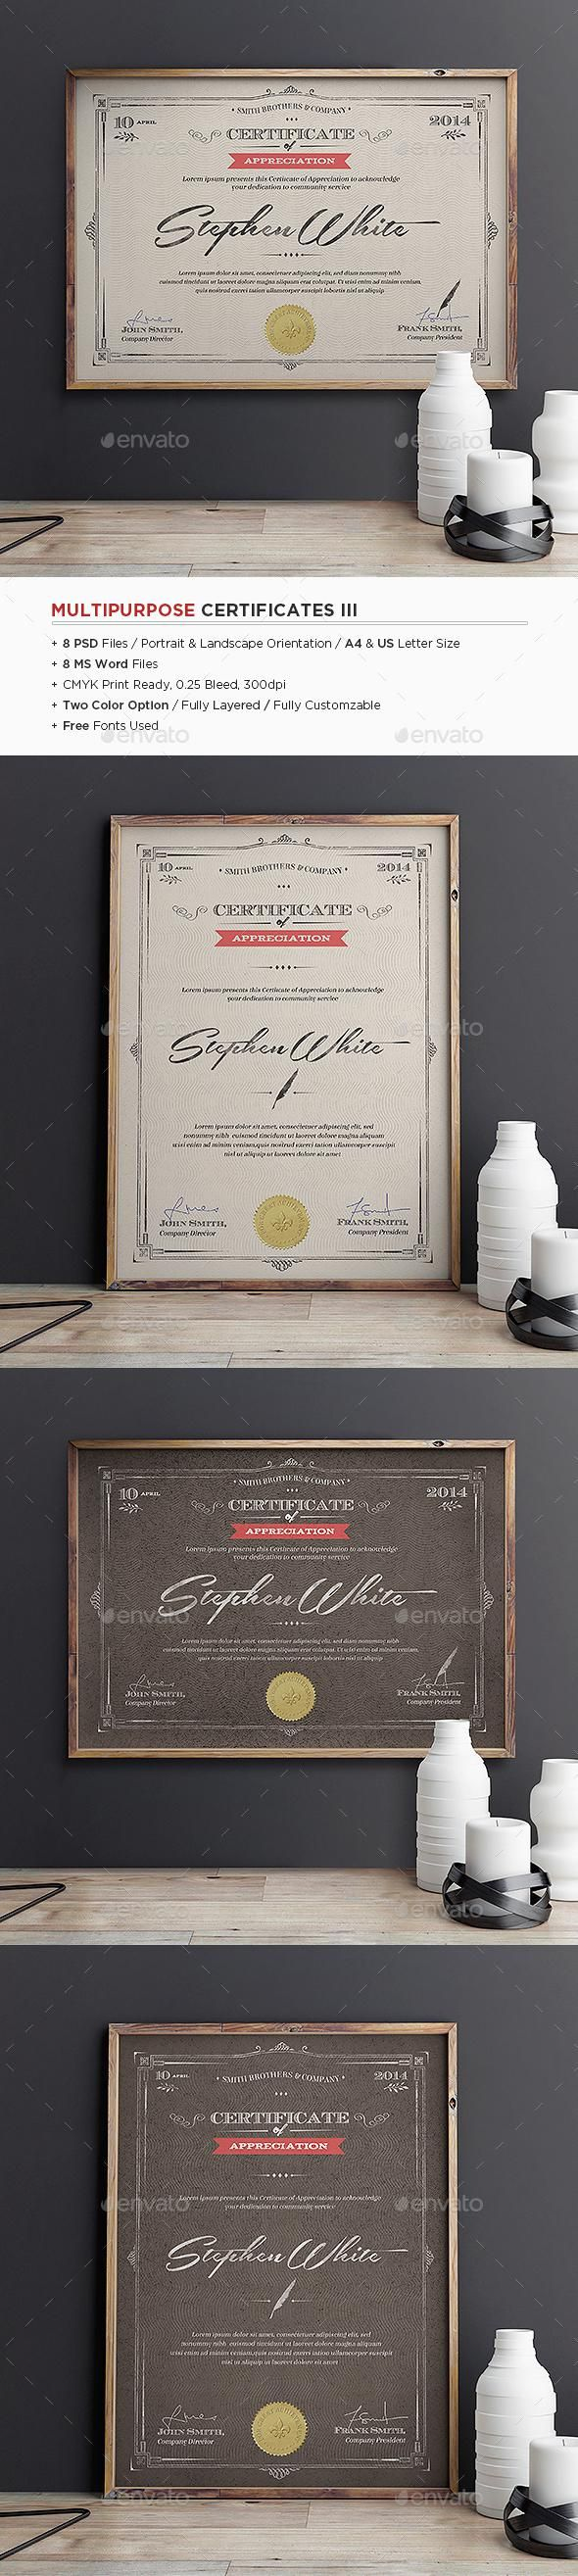 38 best Certificate of Recognition images on Pinterest